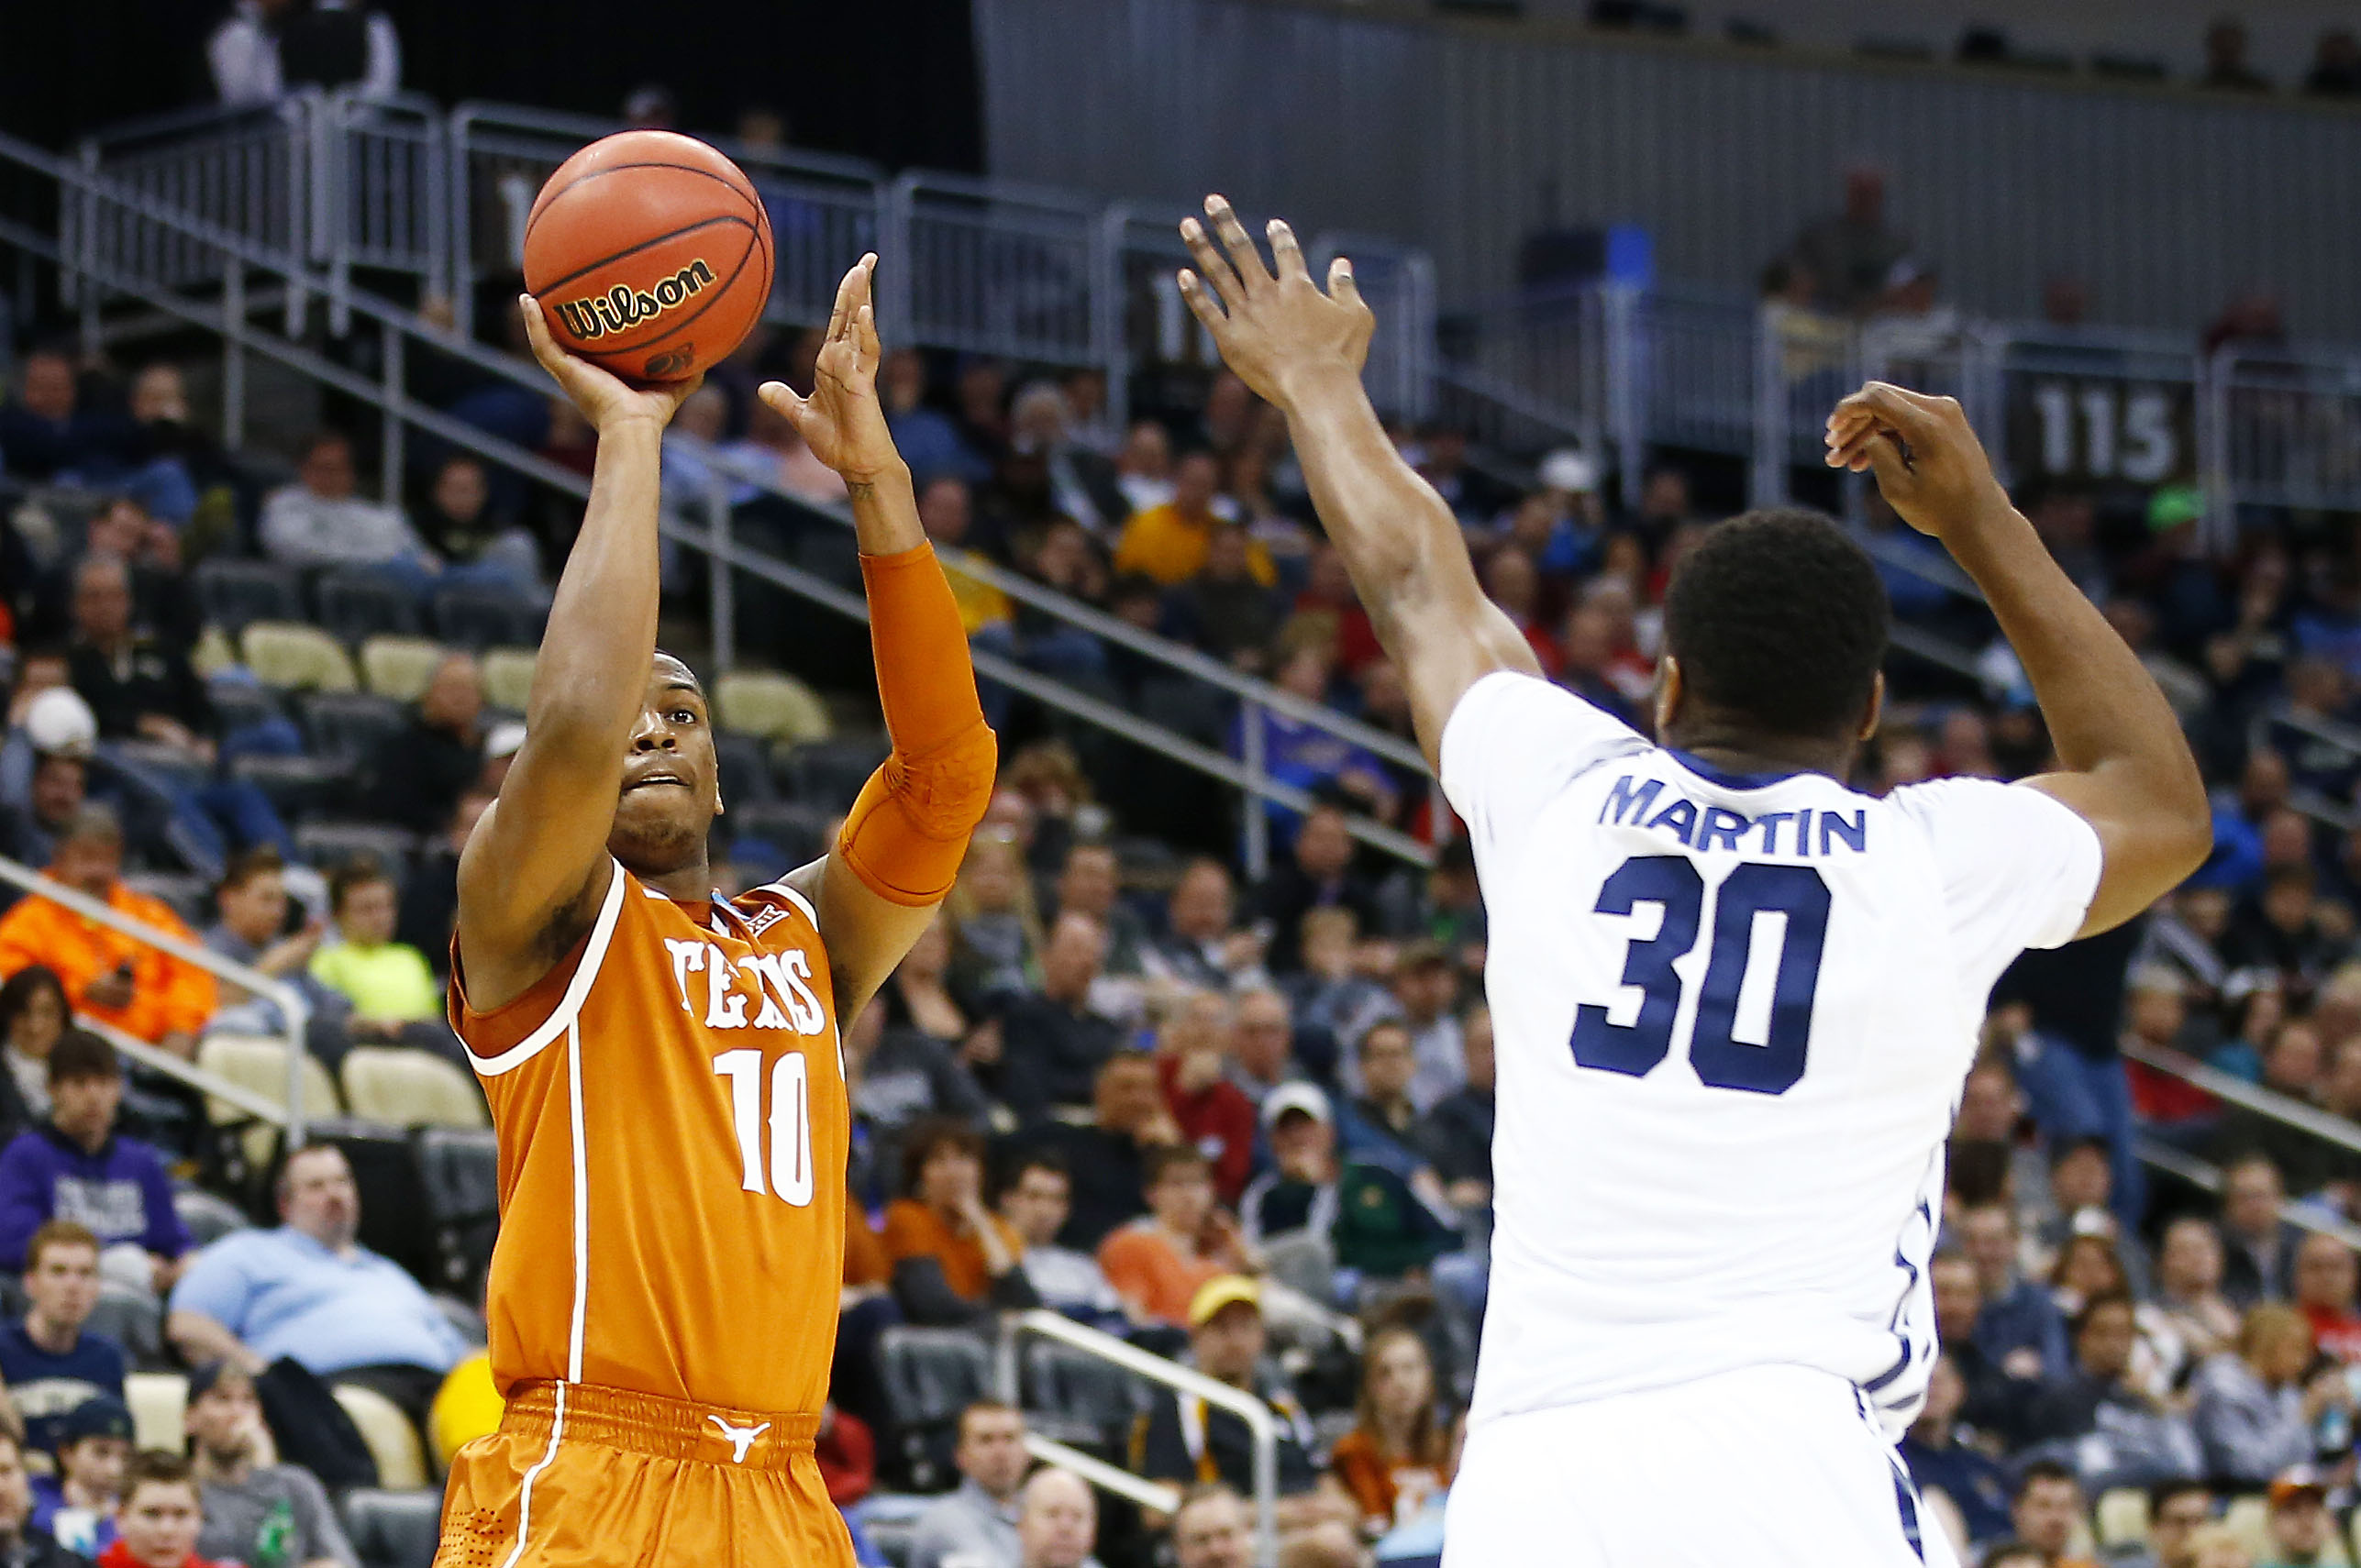 Jonathan Holmes takes a shot for Texas against Butler. (Getty)